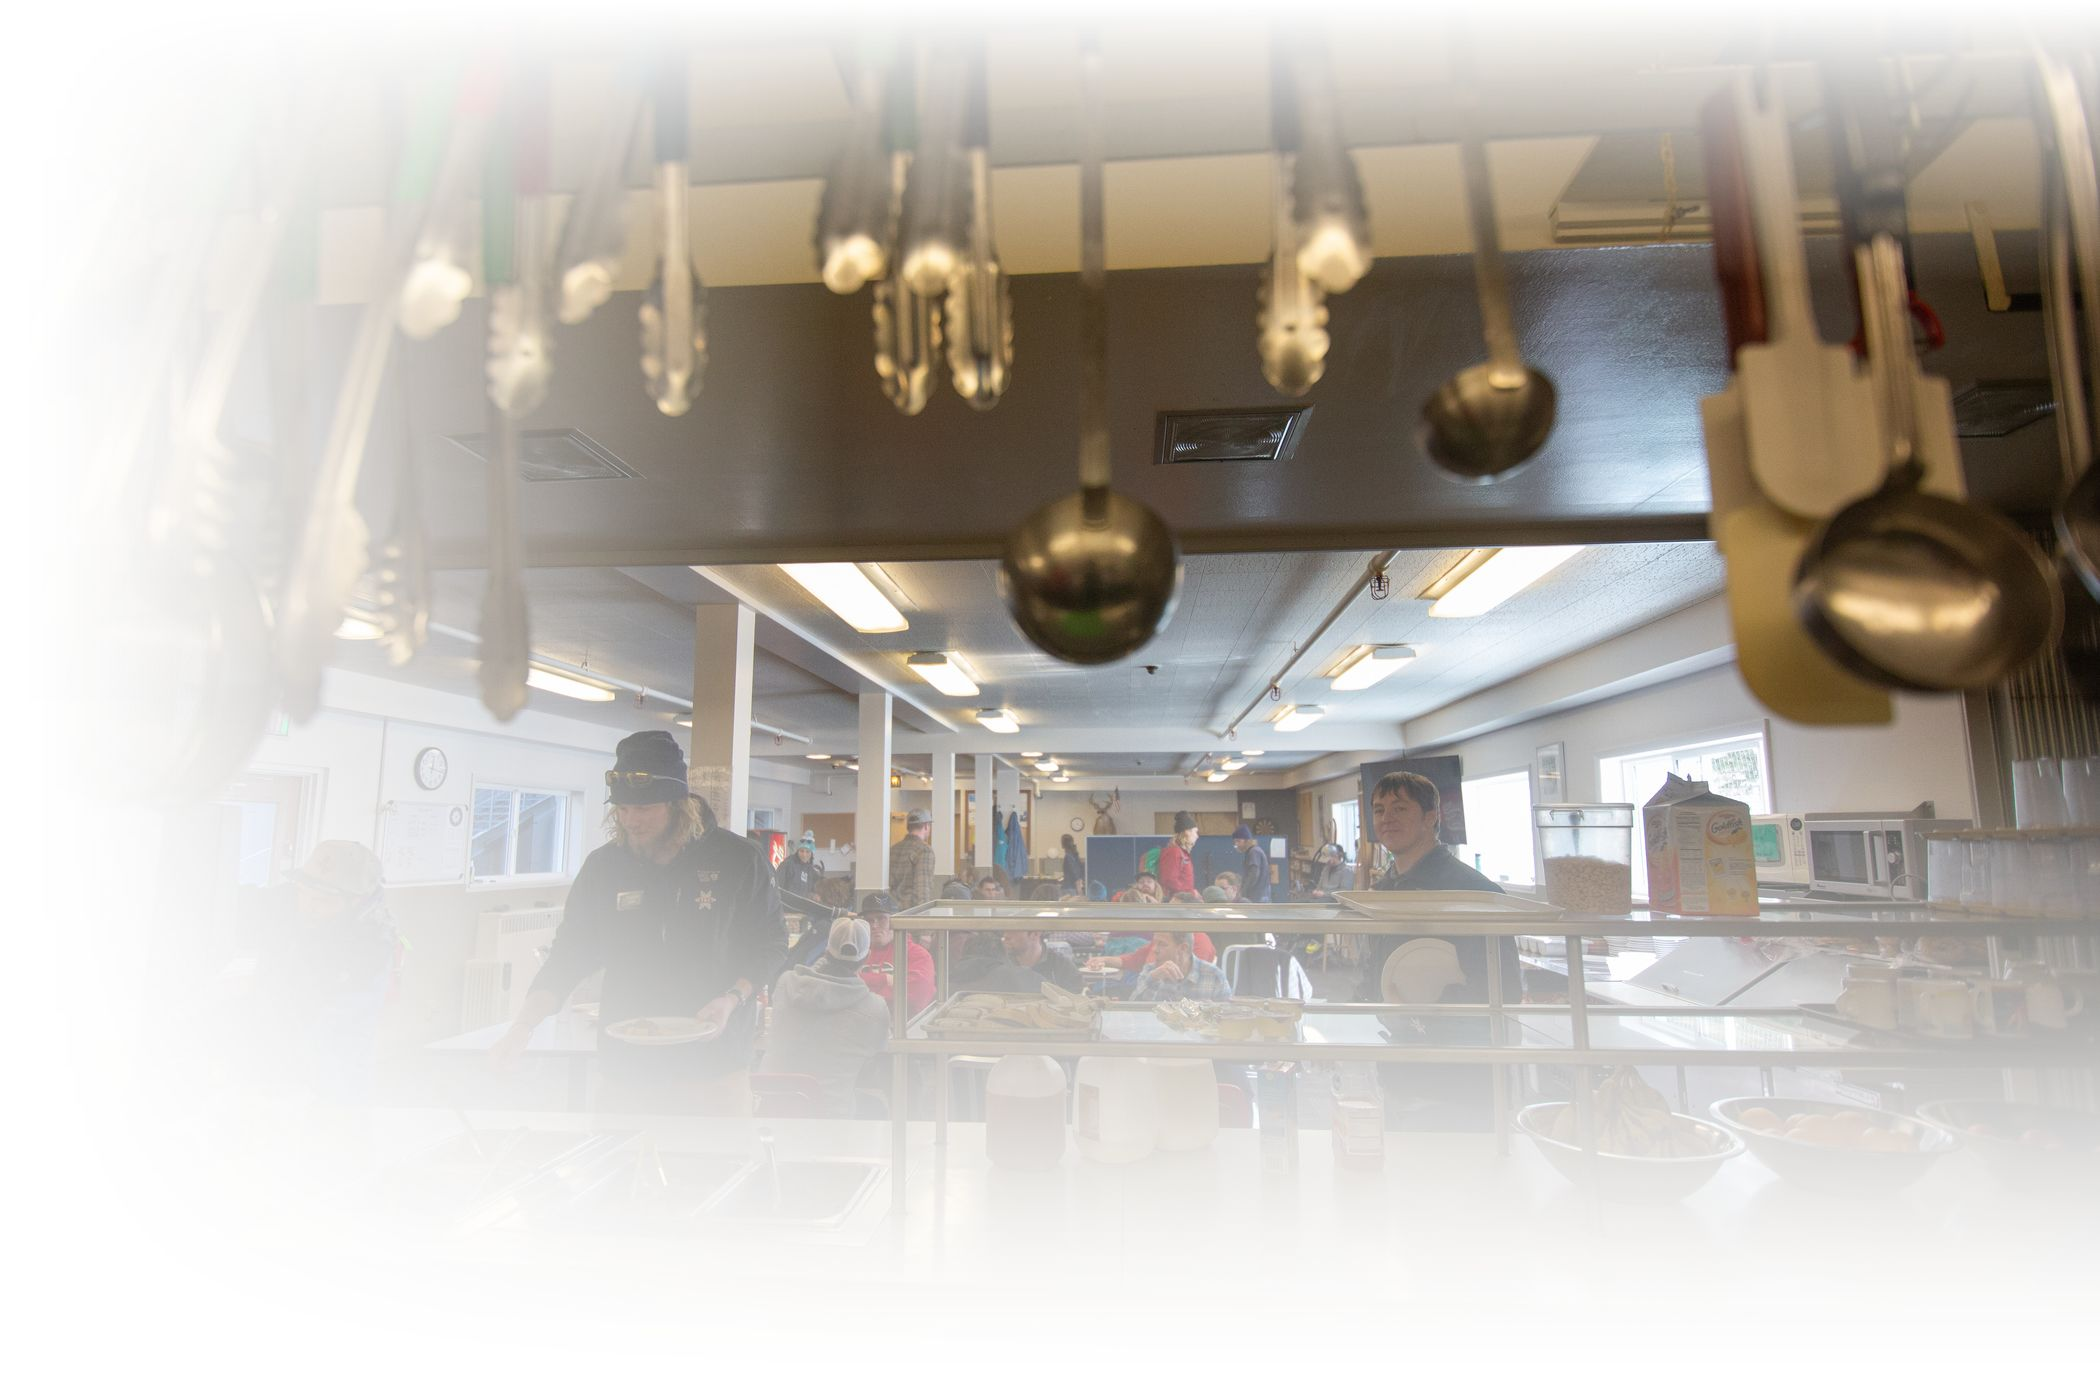 Alta's employee cafeteria with a hot lunch bar